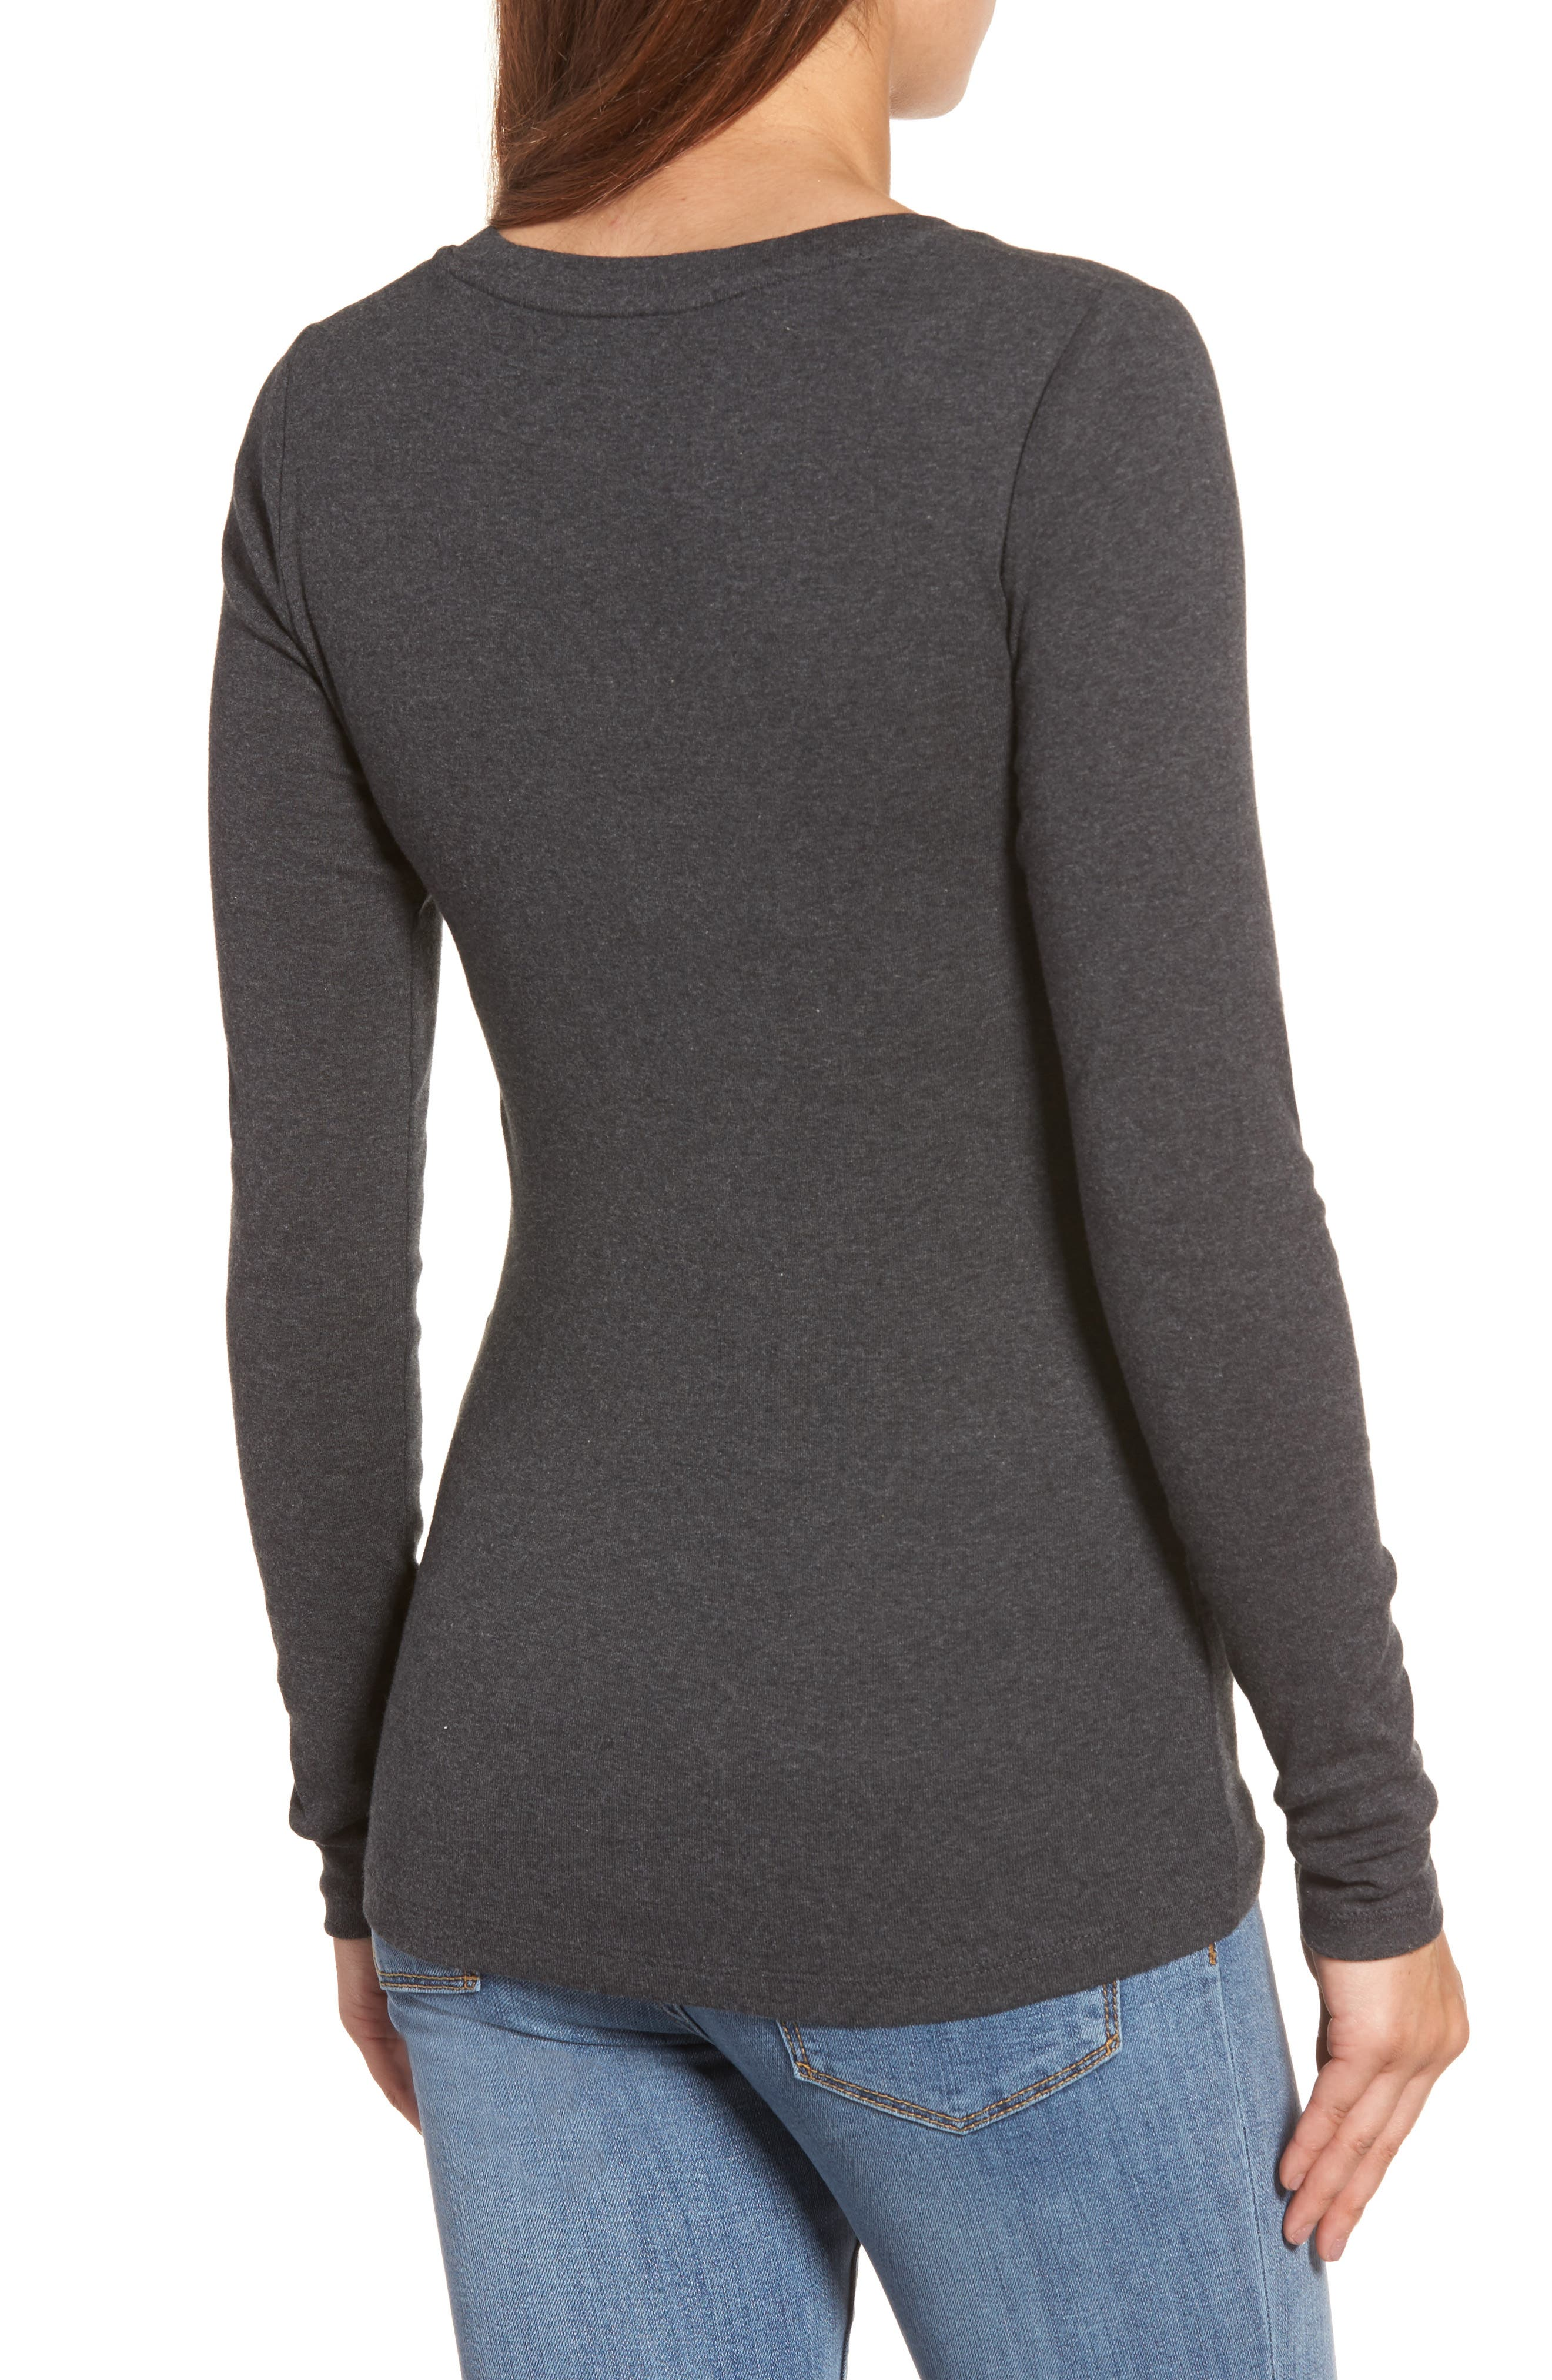 'Melody' Long Sleeve Scoop Neck Tee,                             Alternate thumbnail 2, color,                             021